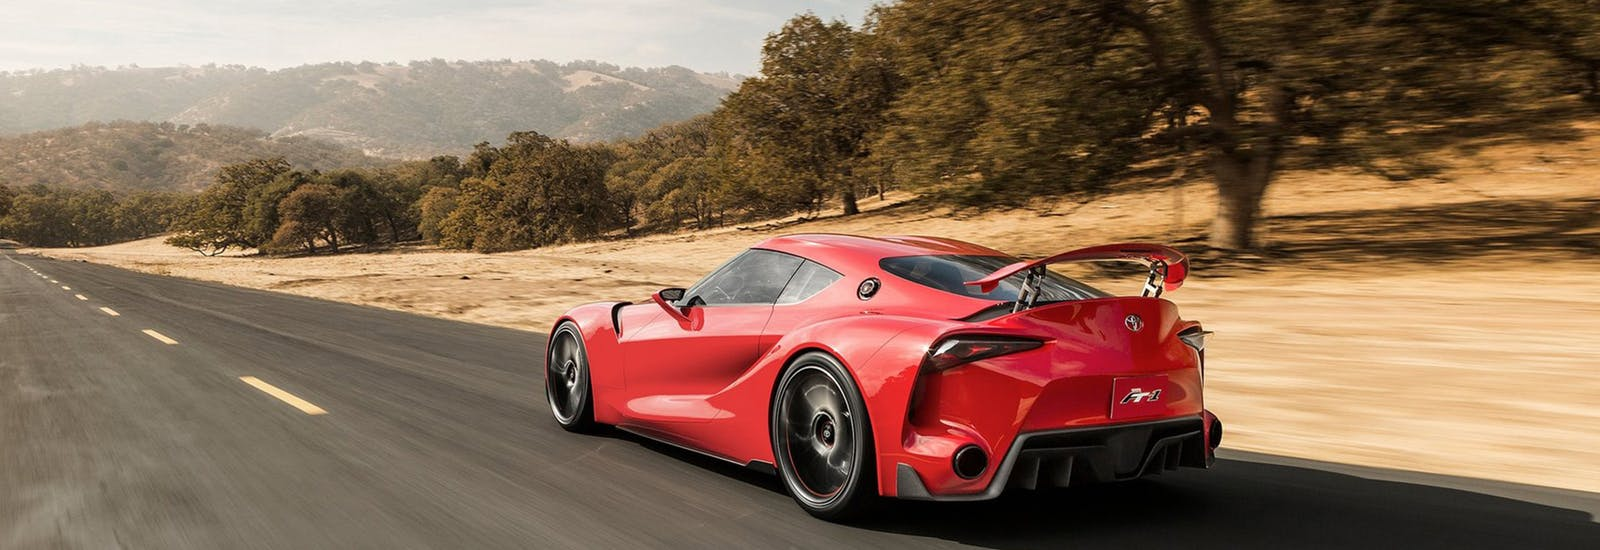 Toyota Ft1 Price >> 2017 Toyota Supra price, specs & release date | carwow